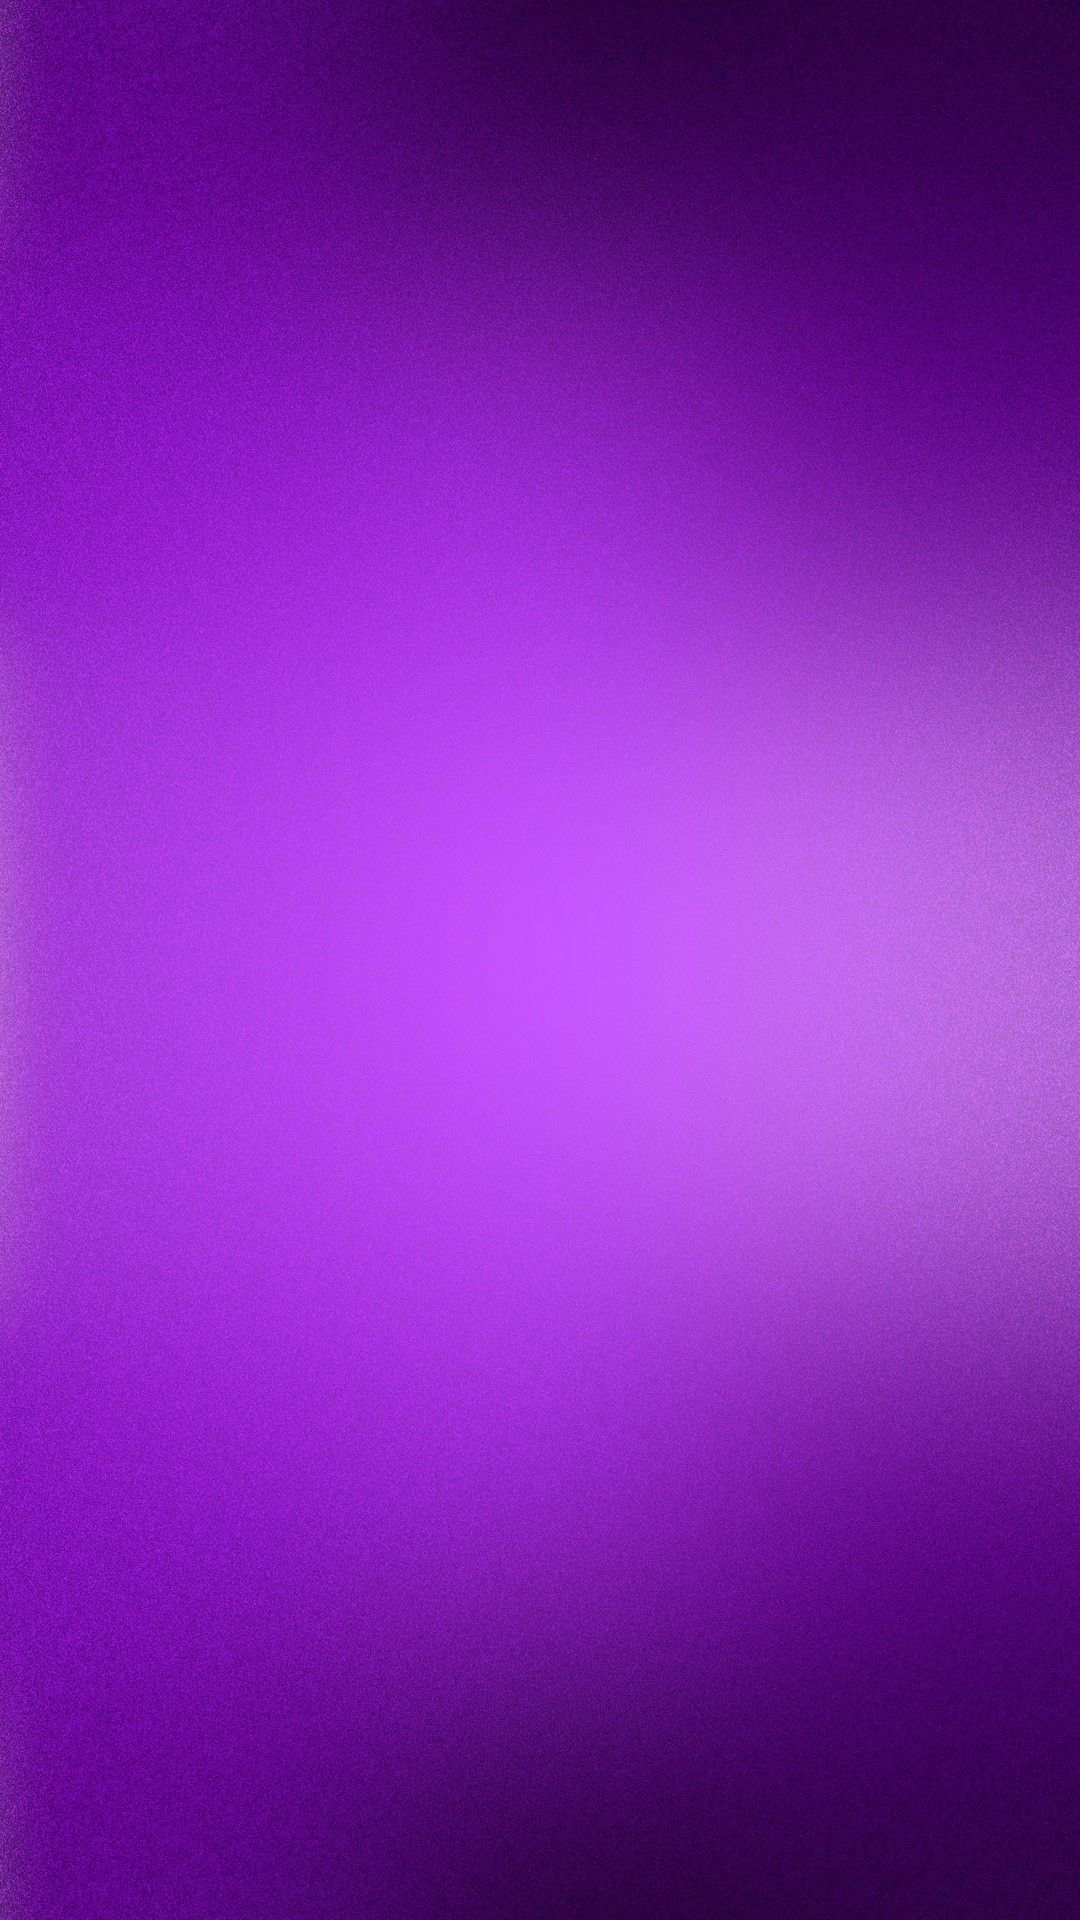 HD Purple IPhone Wallpaper